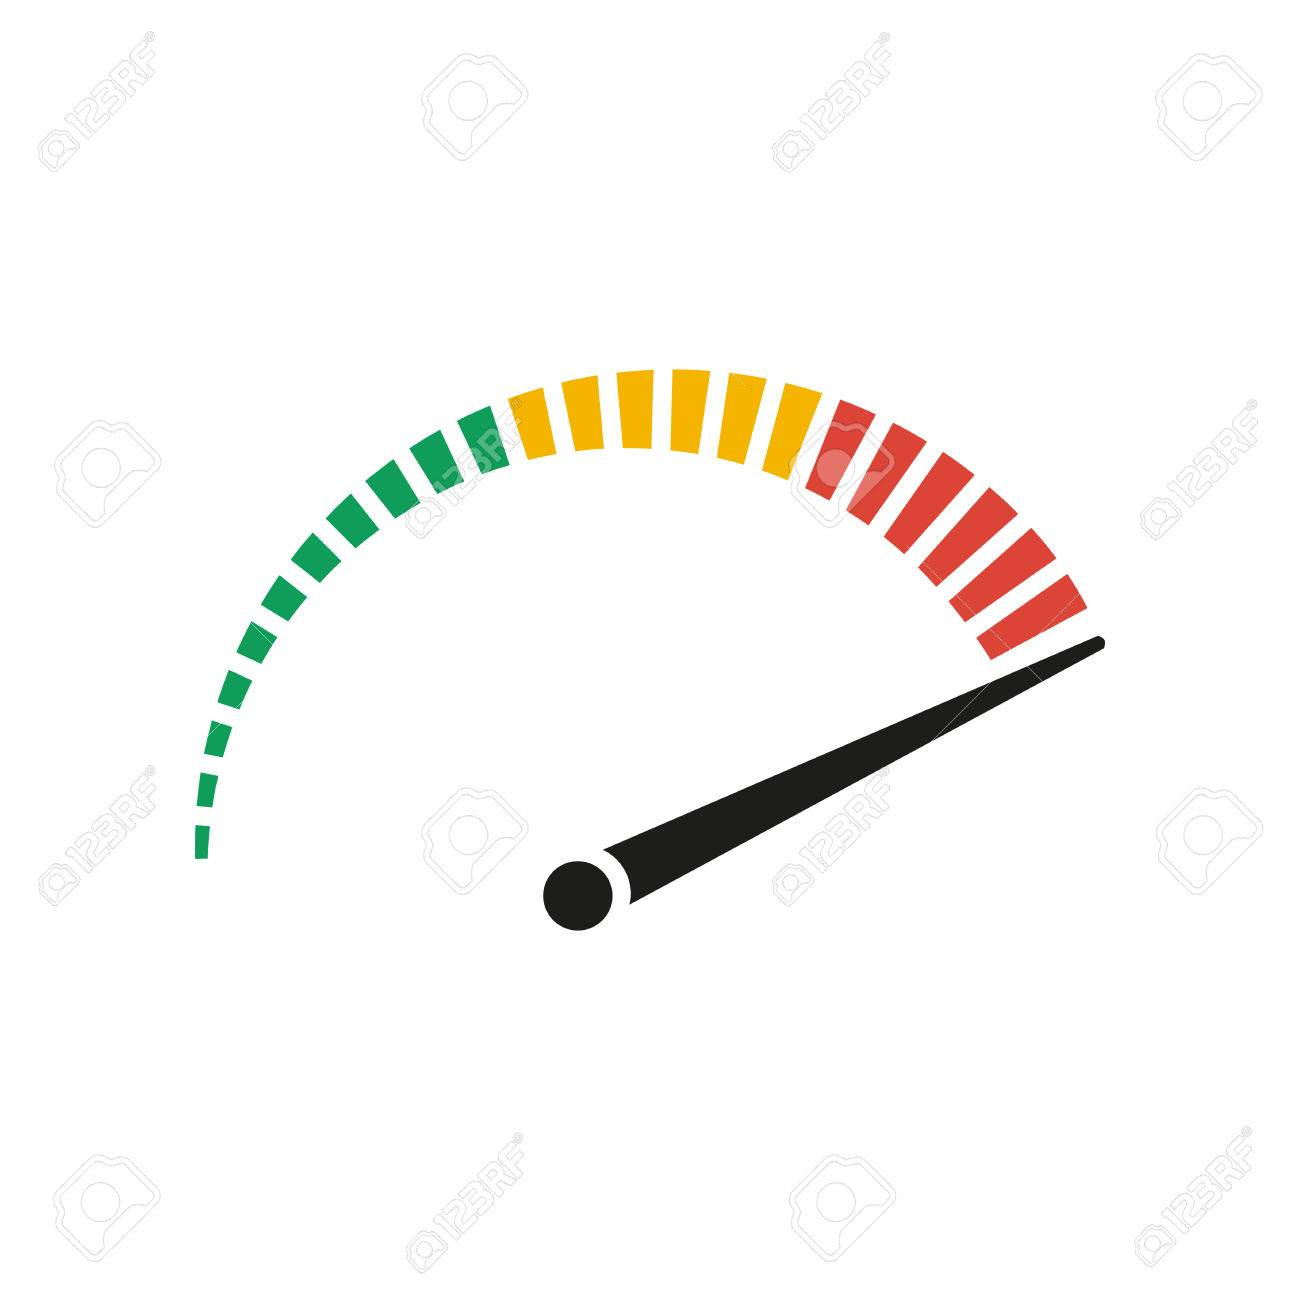 Speedometer - vector icon in black on a white background